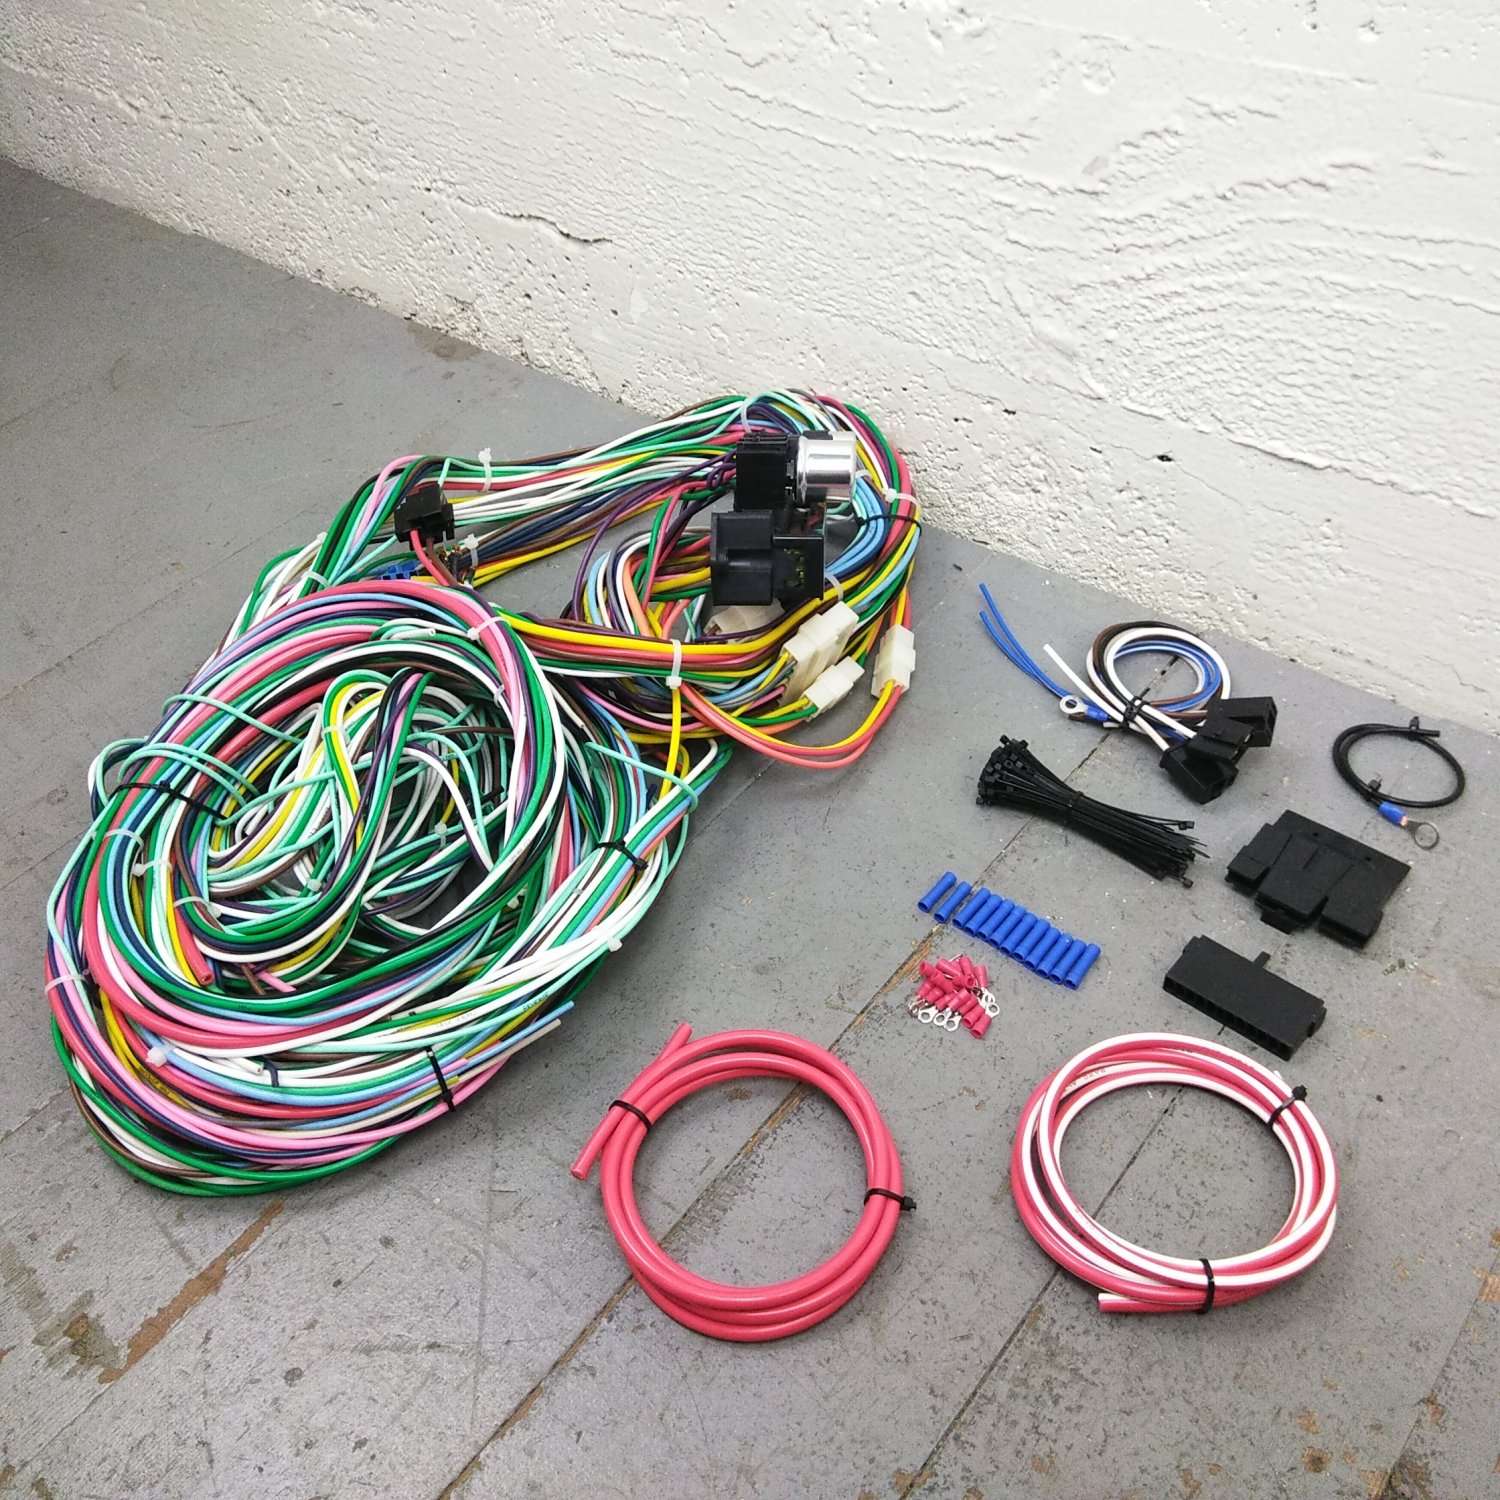 hight resolution of 1960 1965 ford falcon wire harness upgrade kit fits painless fuse rh ebay com ford wiring